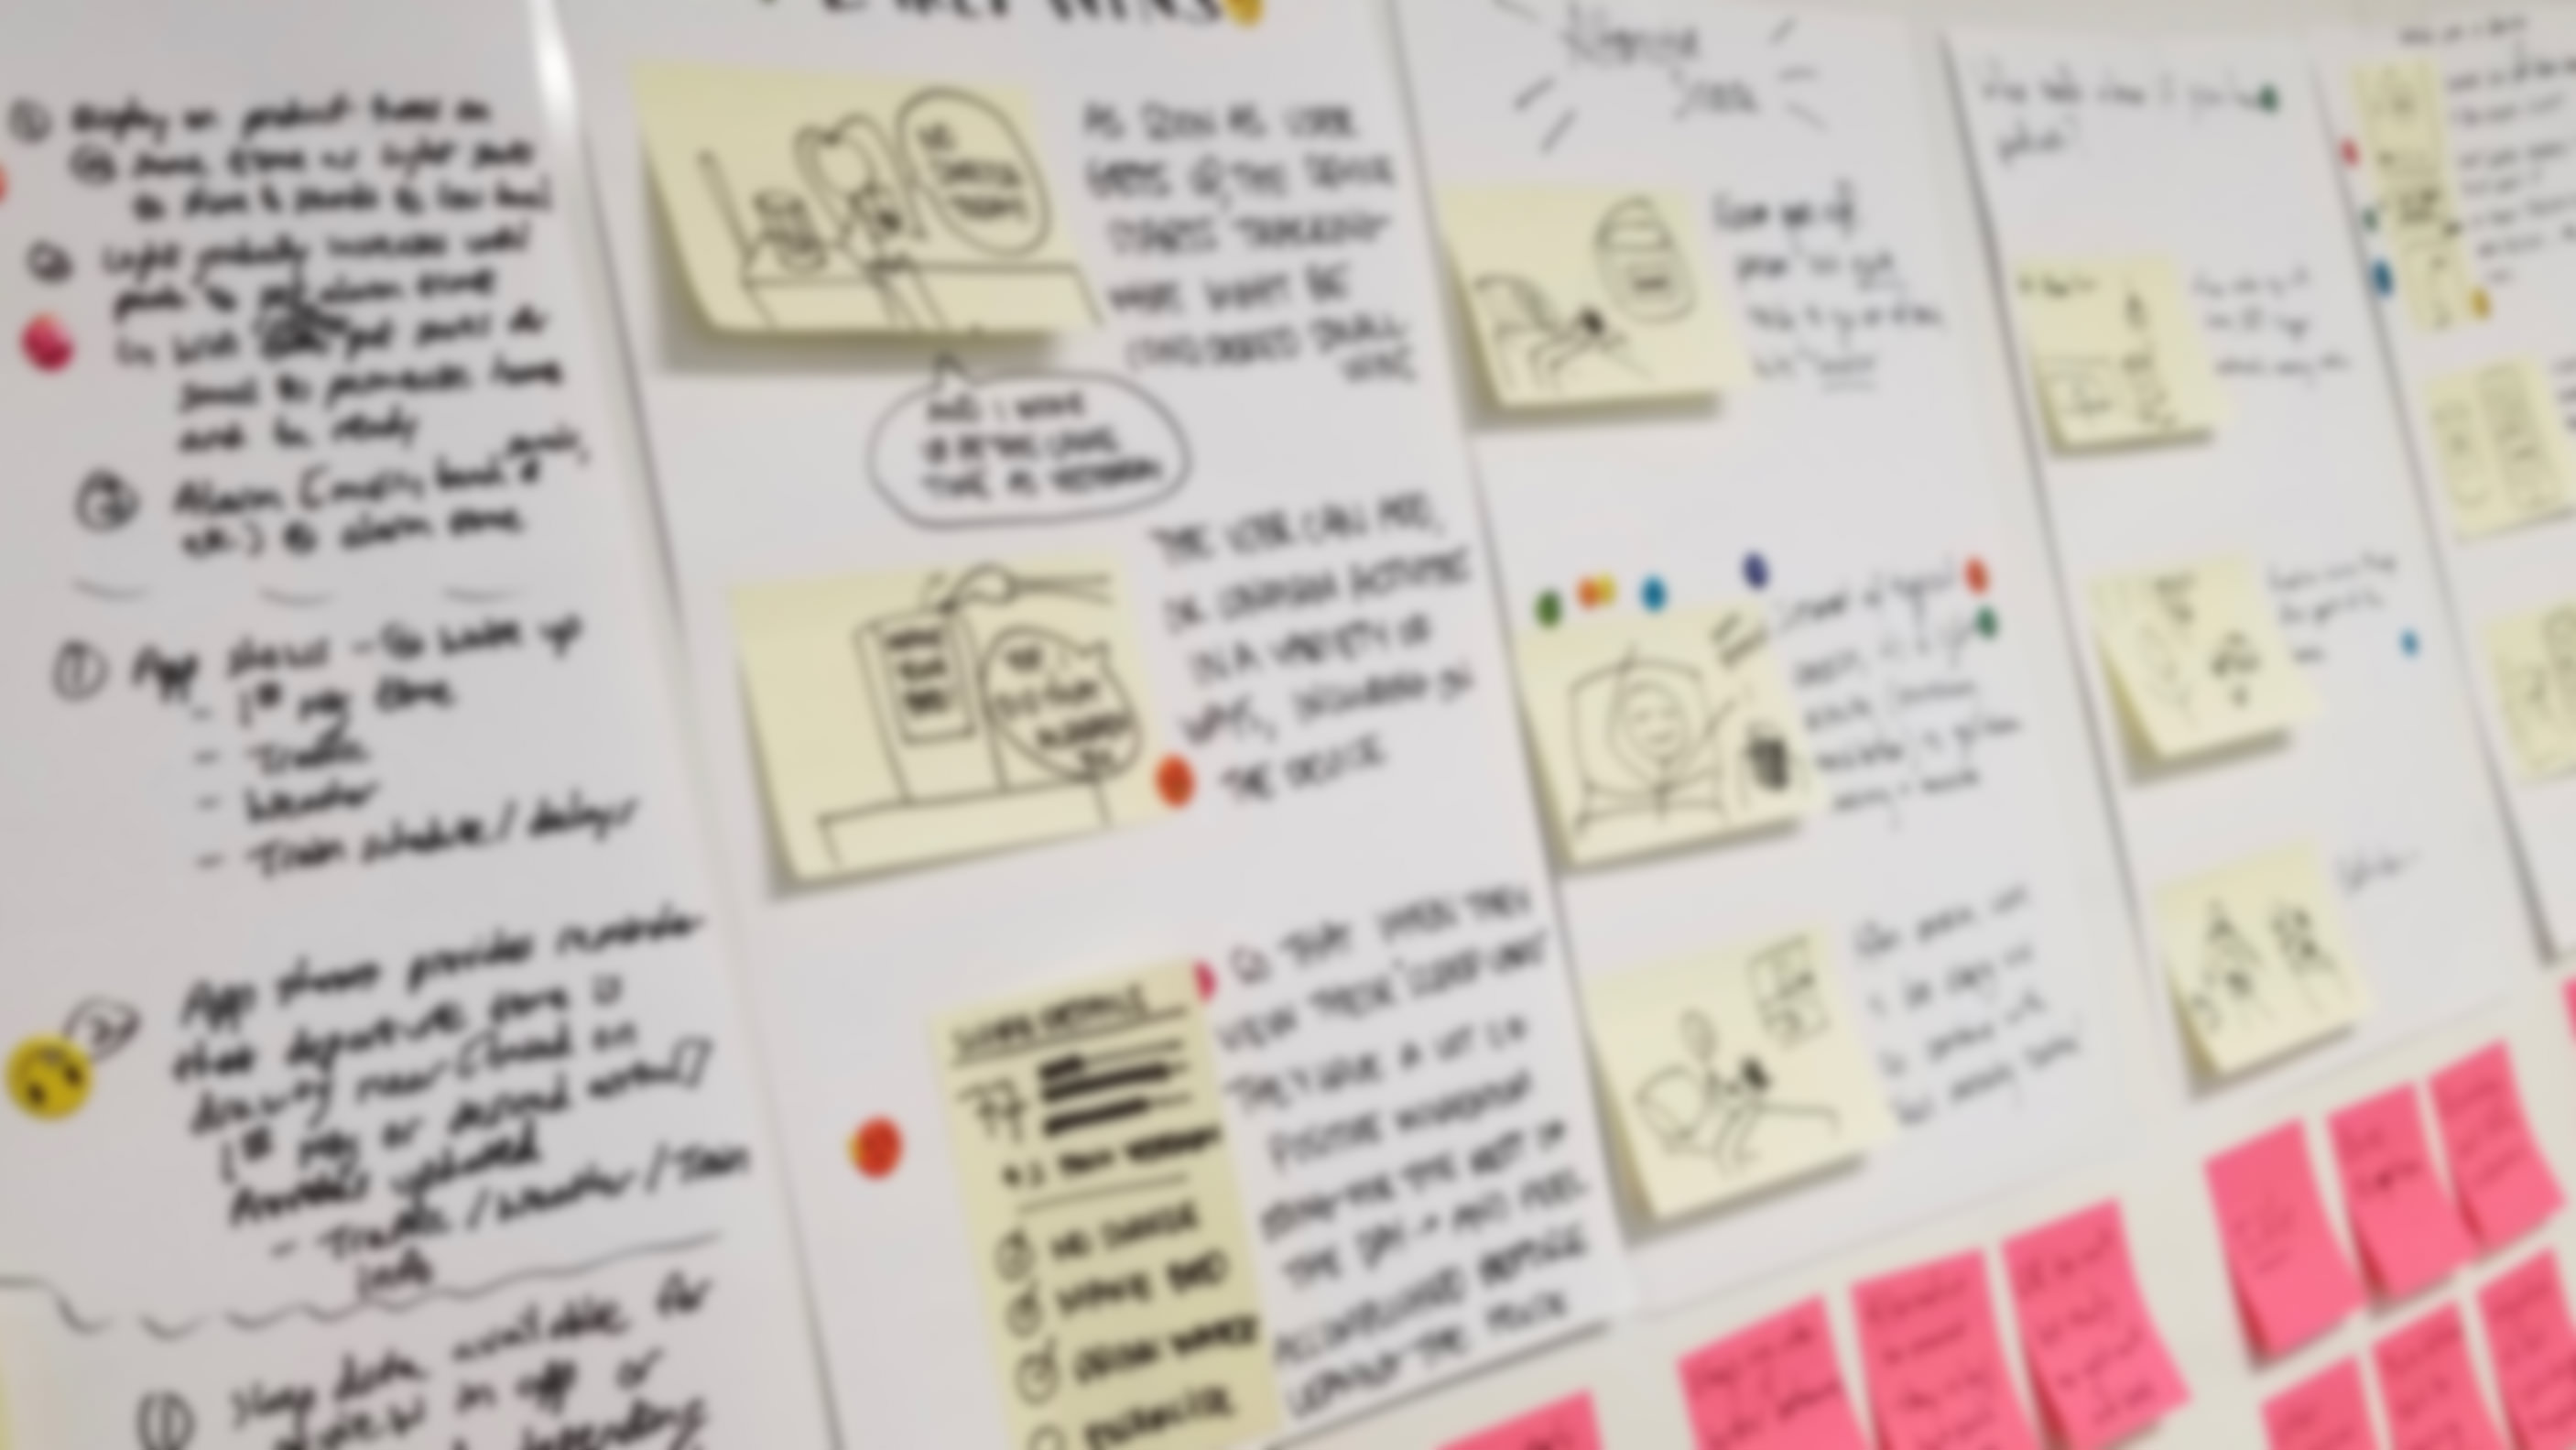 Design Sprint prototyping